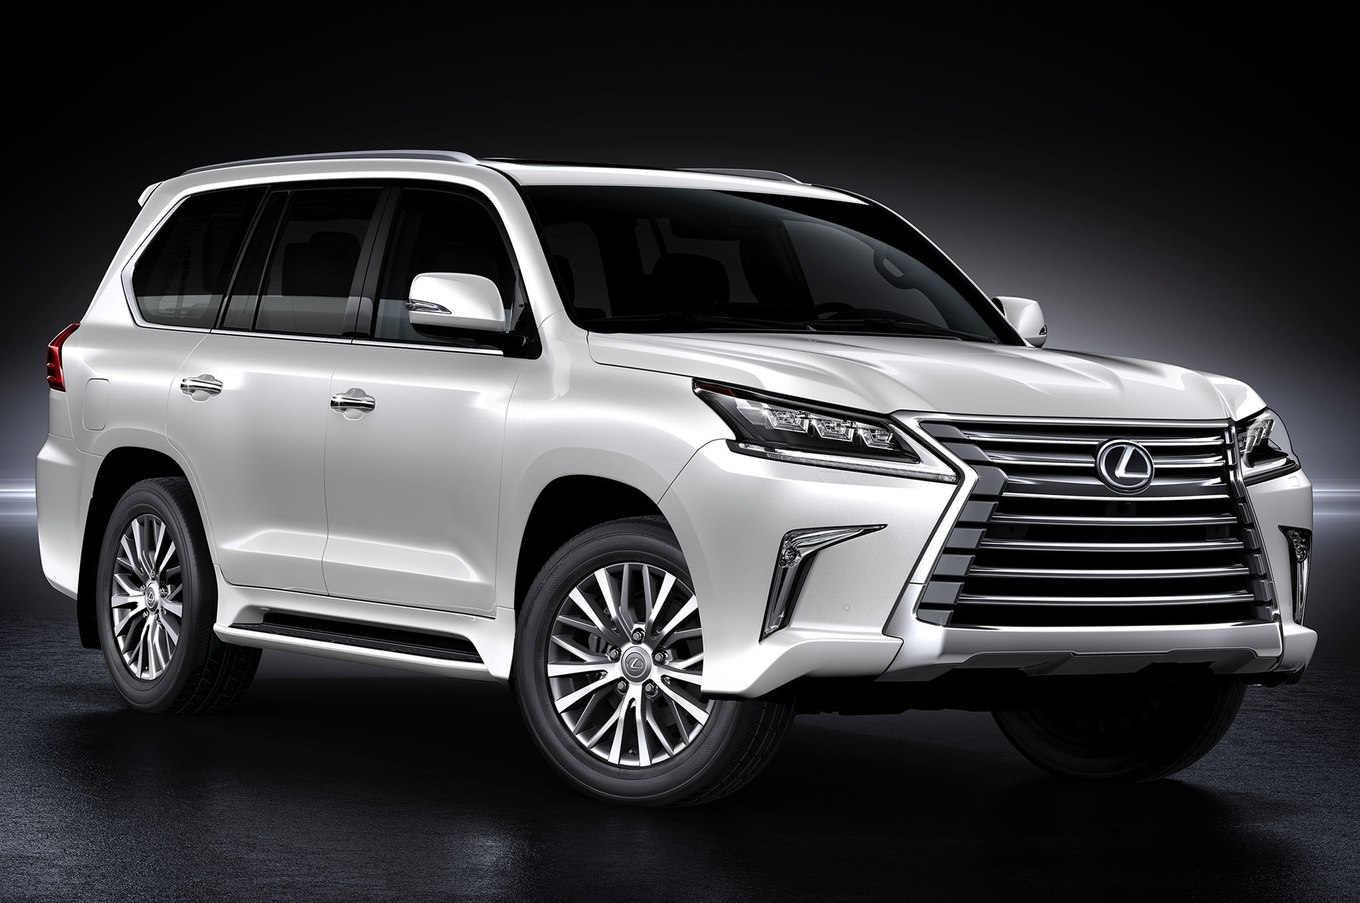 Lexus lx570 photo - 5